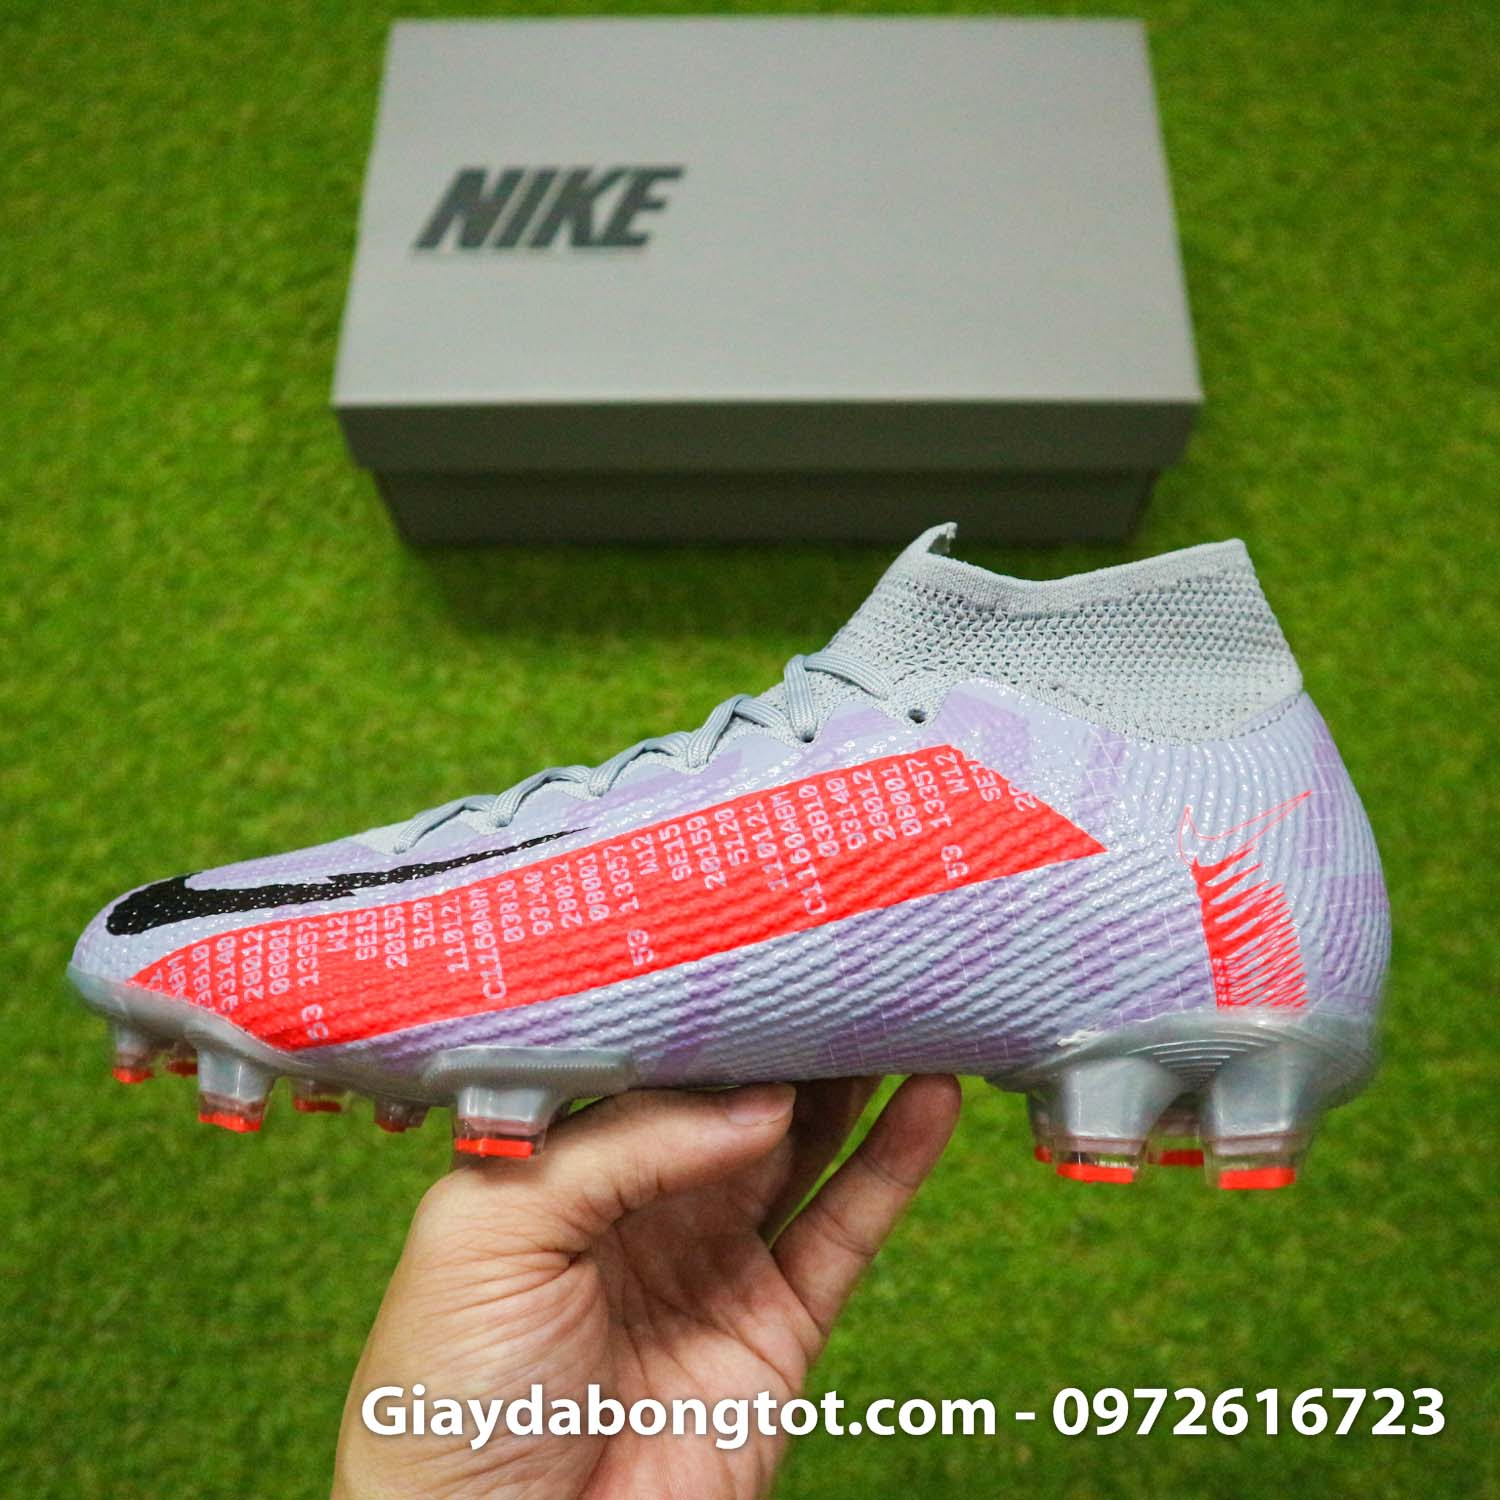 nike mercurial superfly 7 elite fg xam do vach den euro 2020 (12)